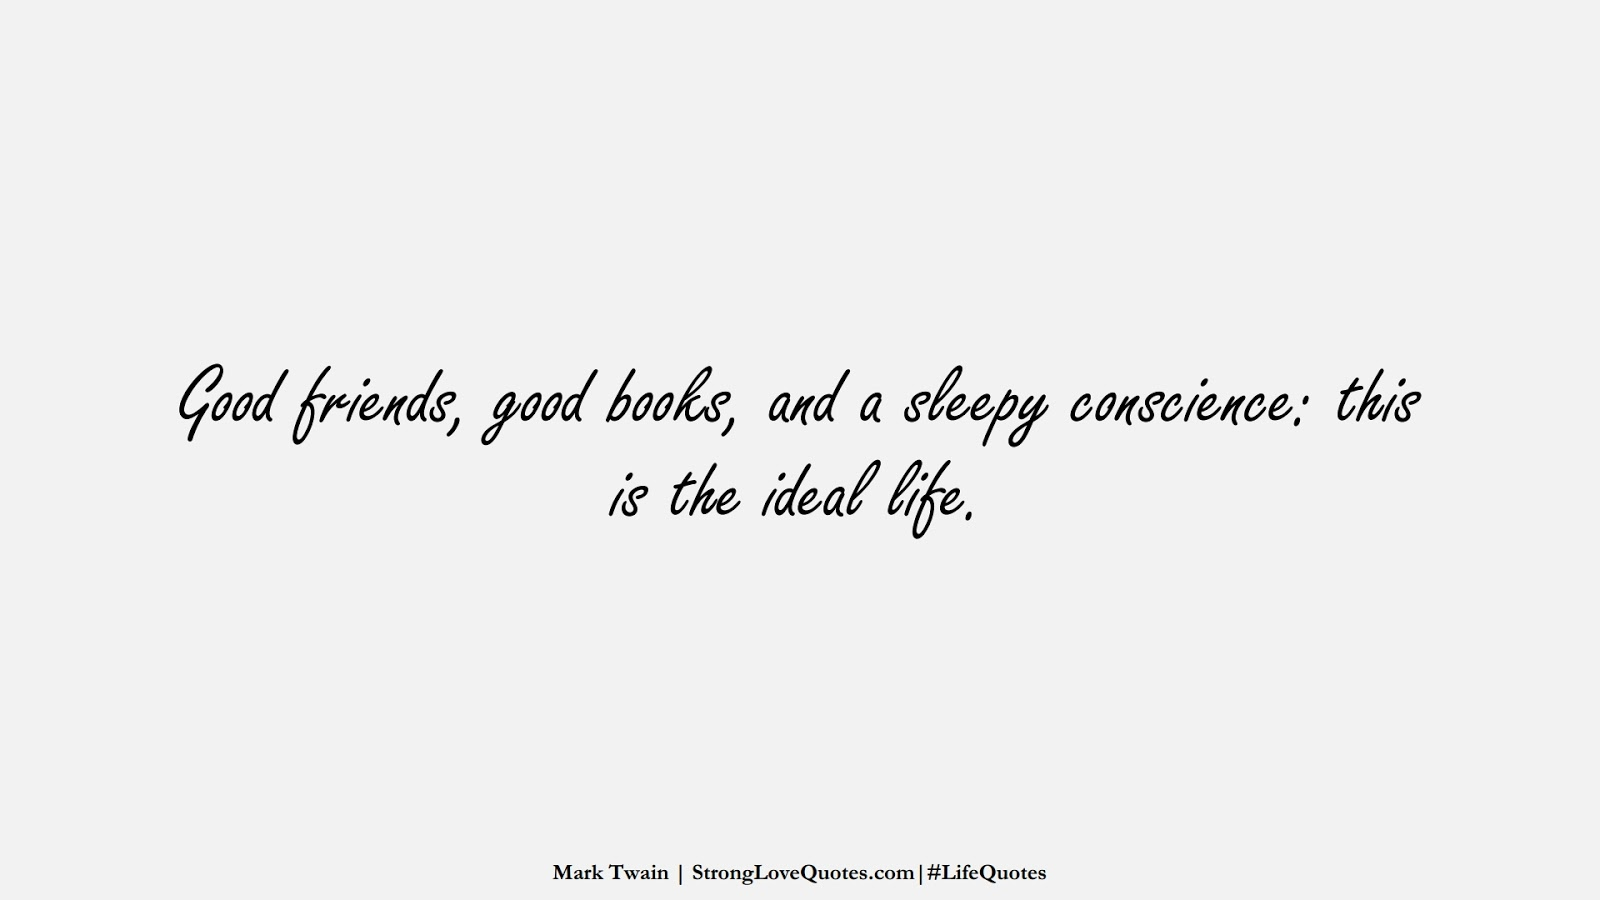 Good friends, good books, and a sleepy conscience: this is the ideal life. (Mark Twain);  #LifeQuotes